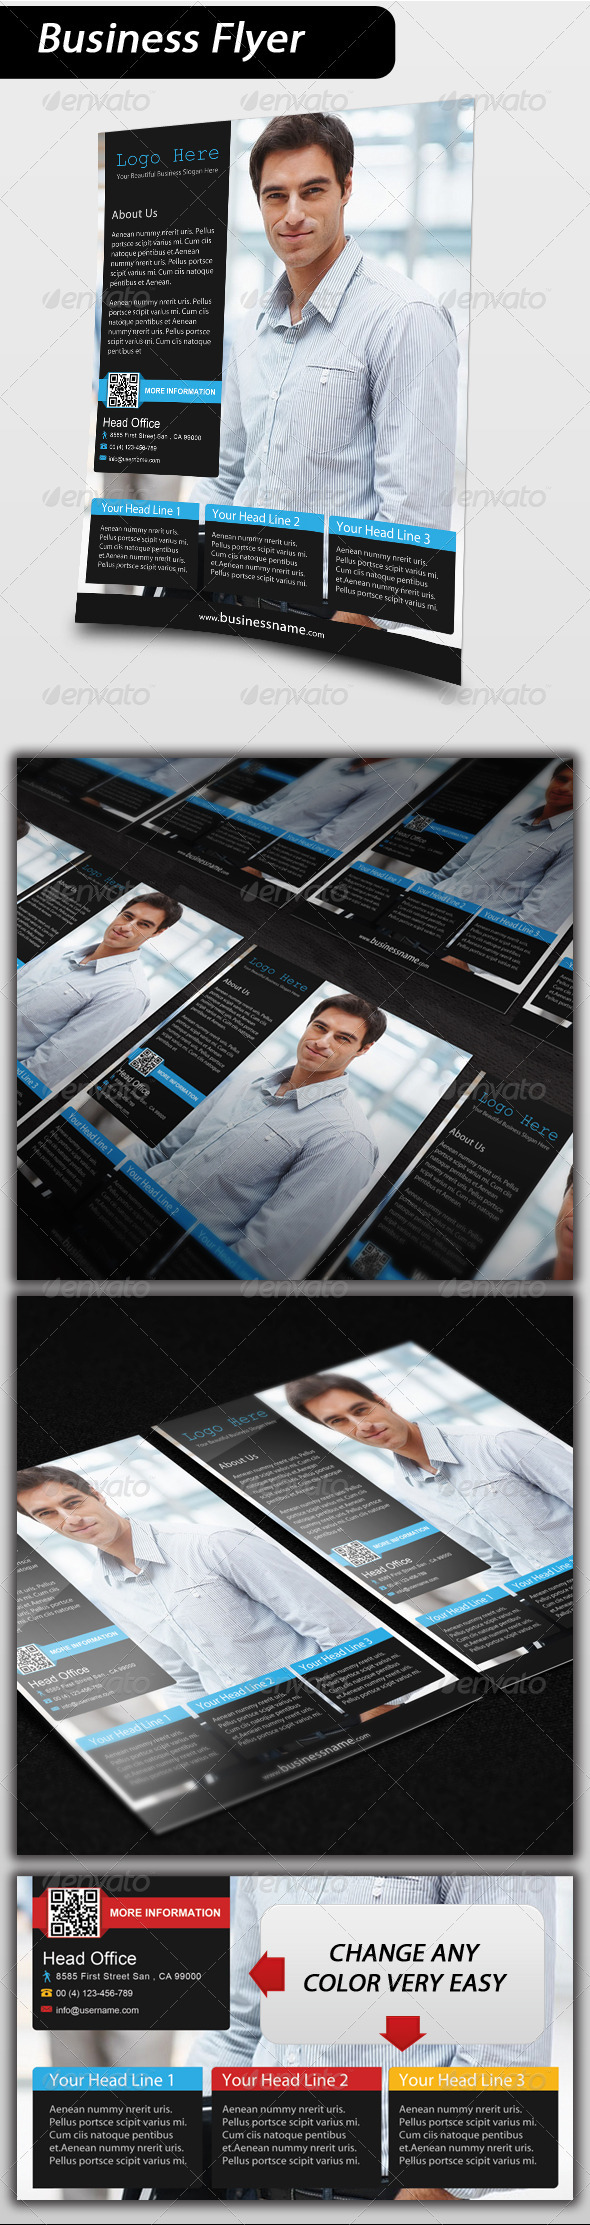 GraphicRiver Business Flyer 3545749